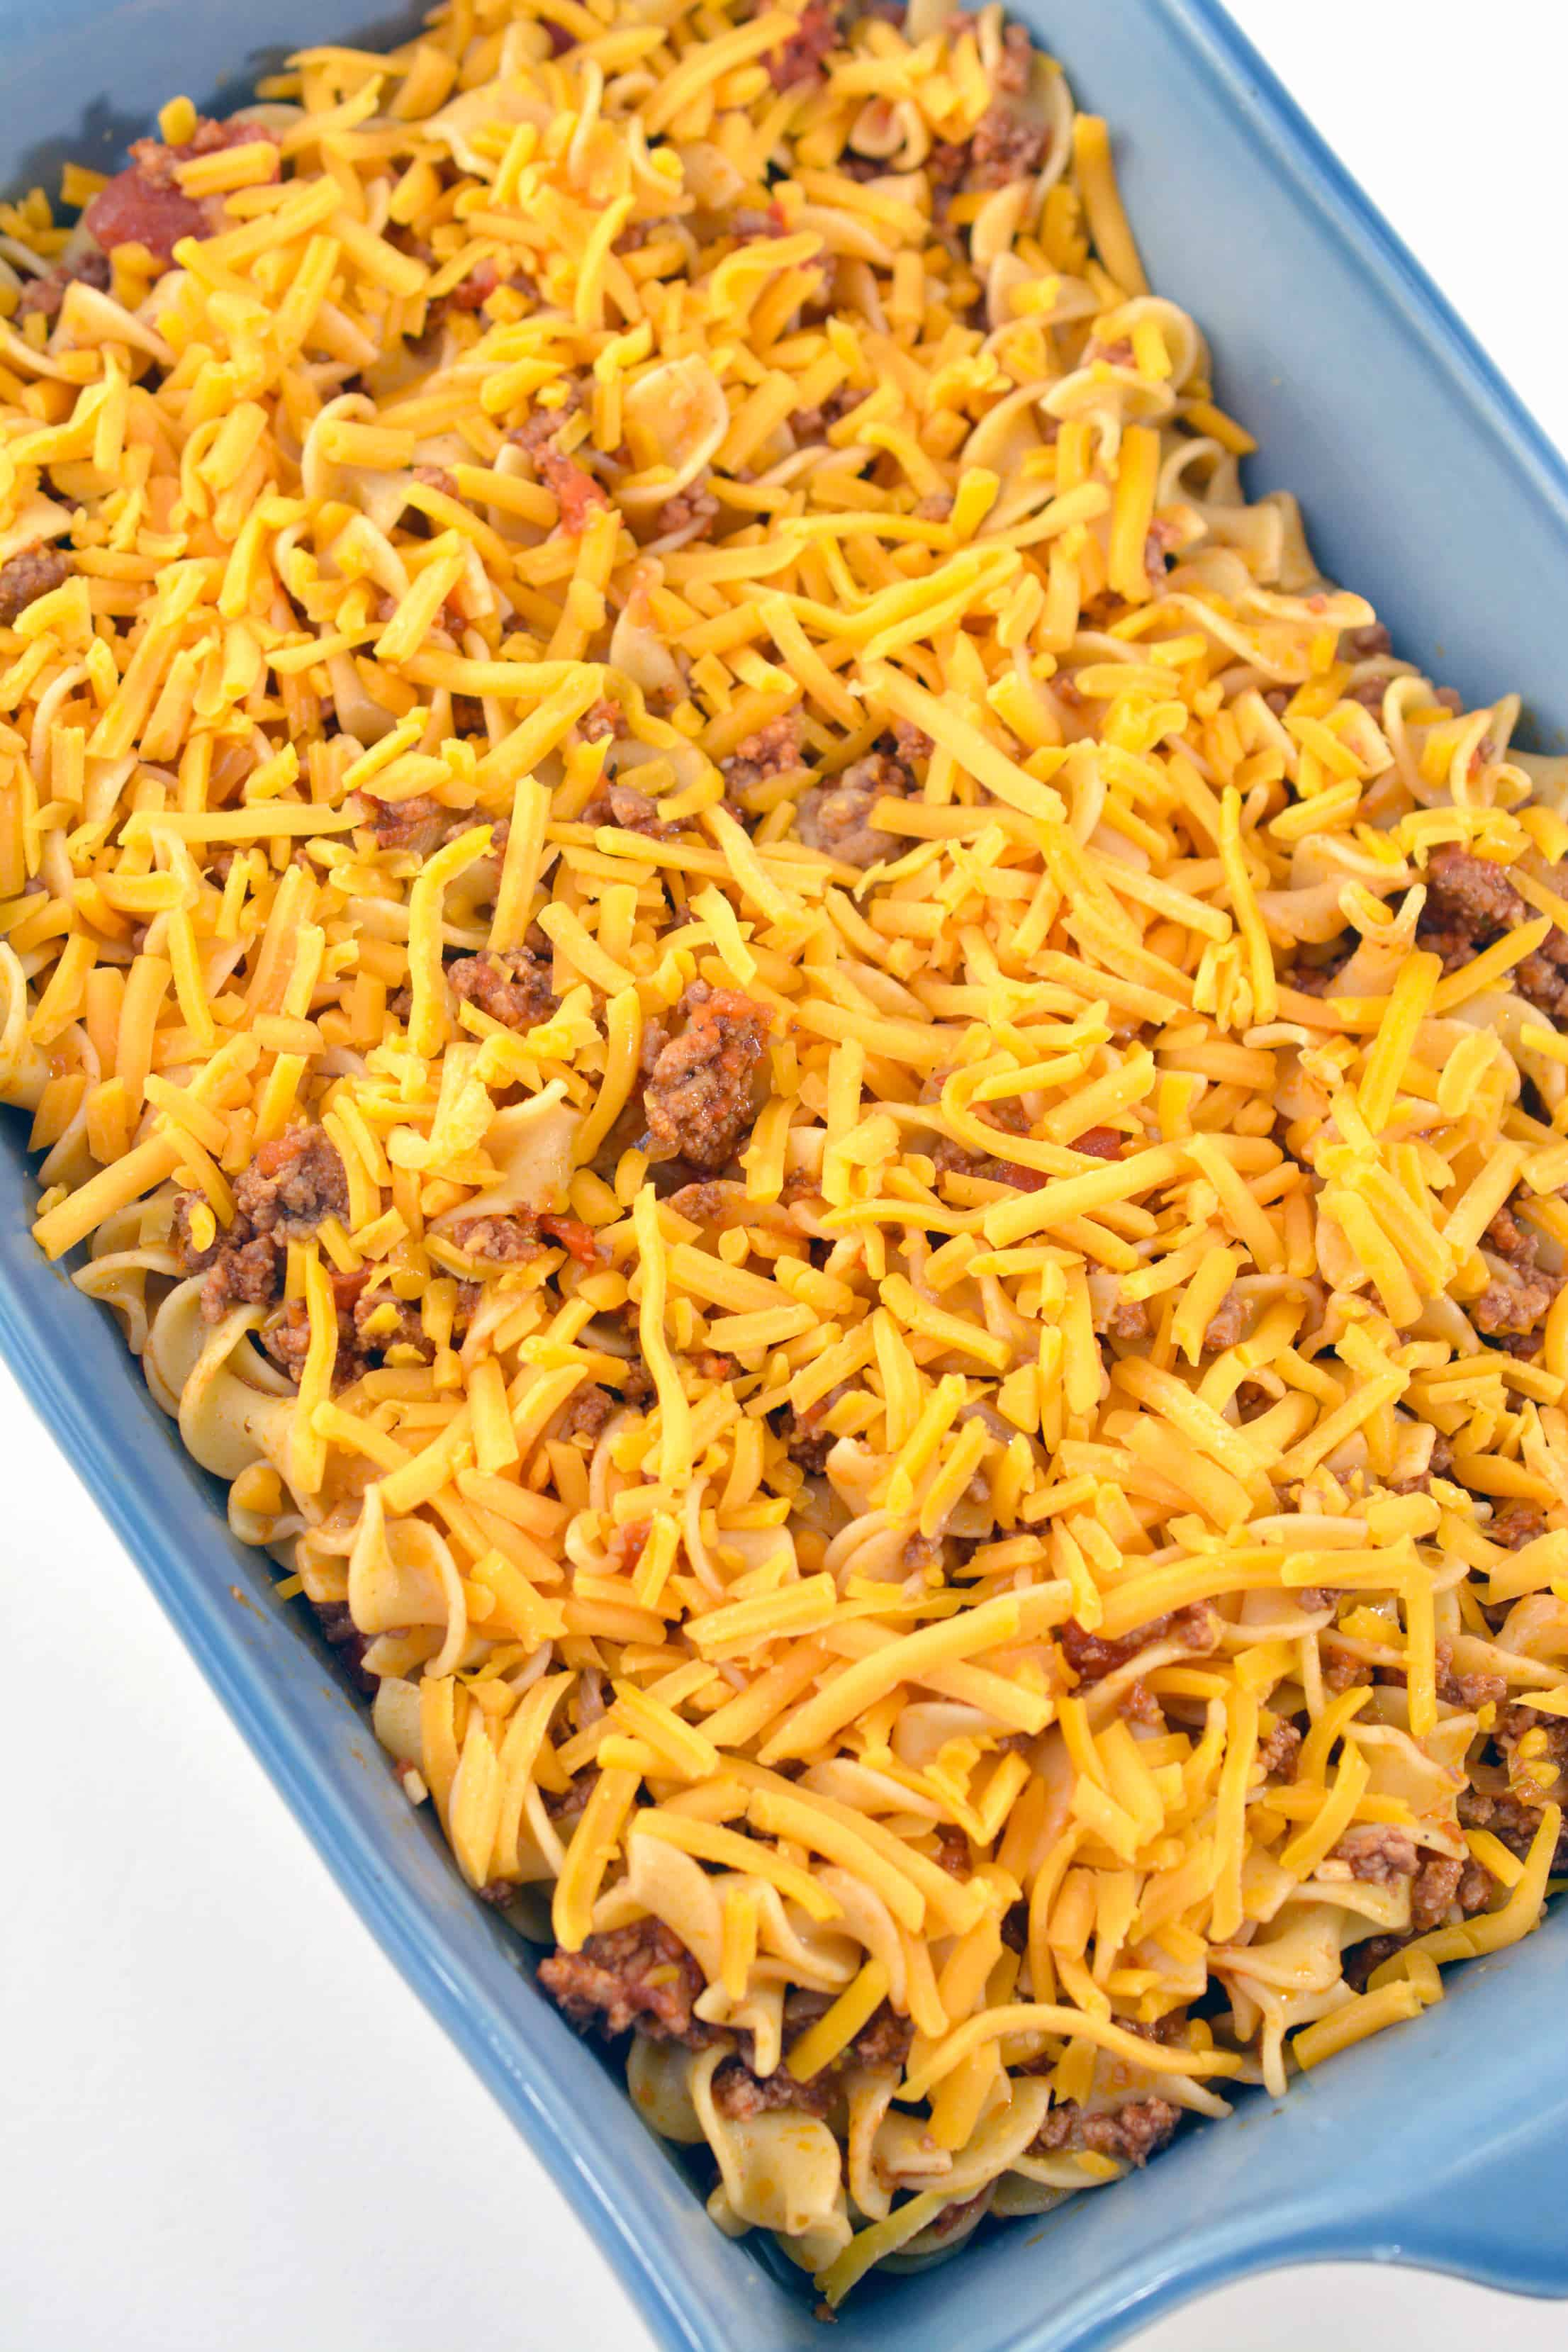 cheese over noodles and beef in casserole dish